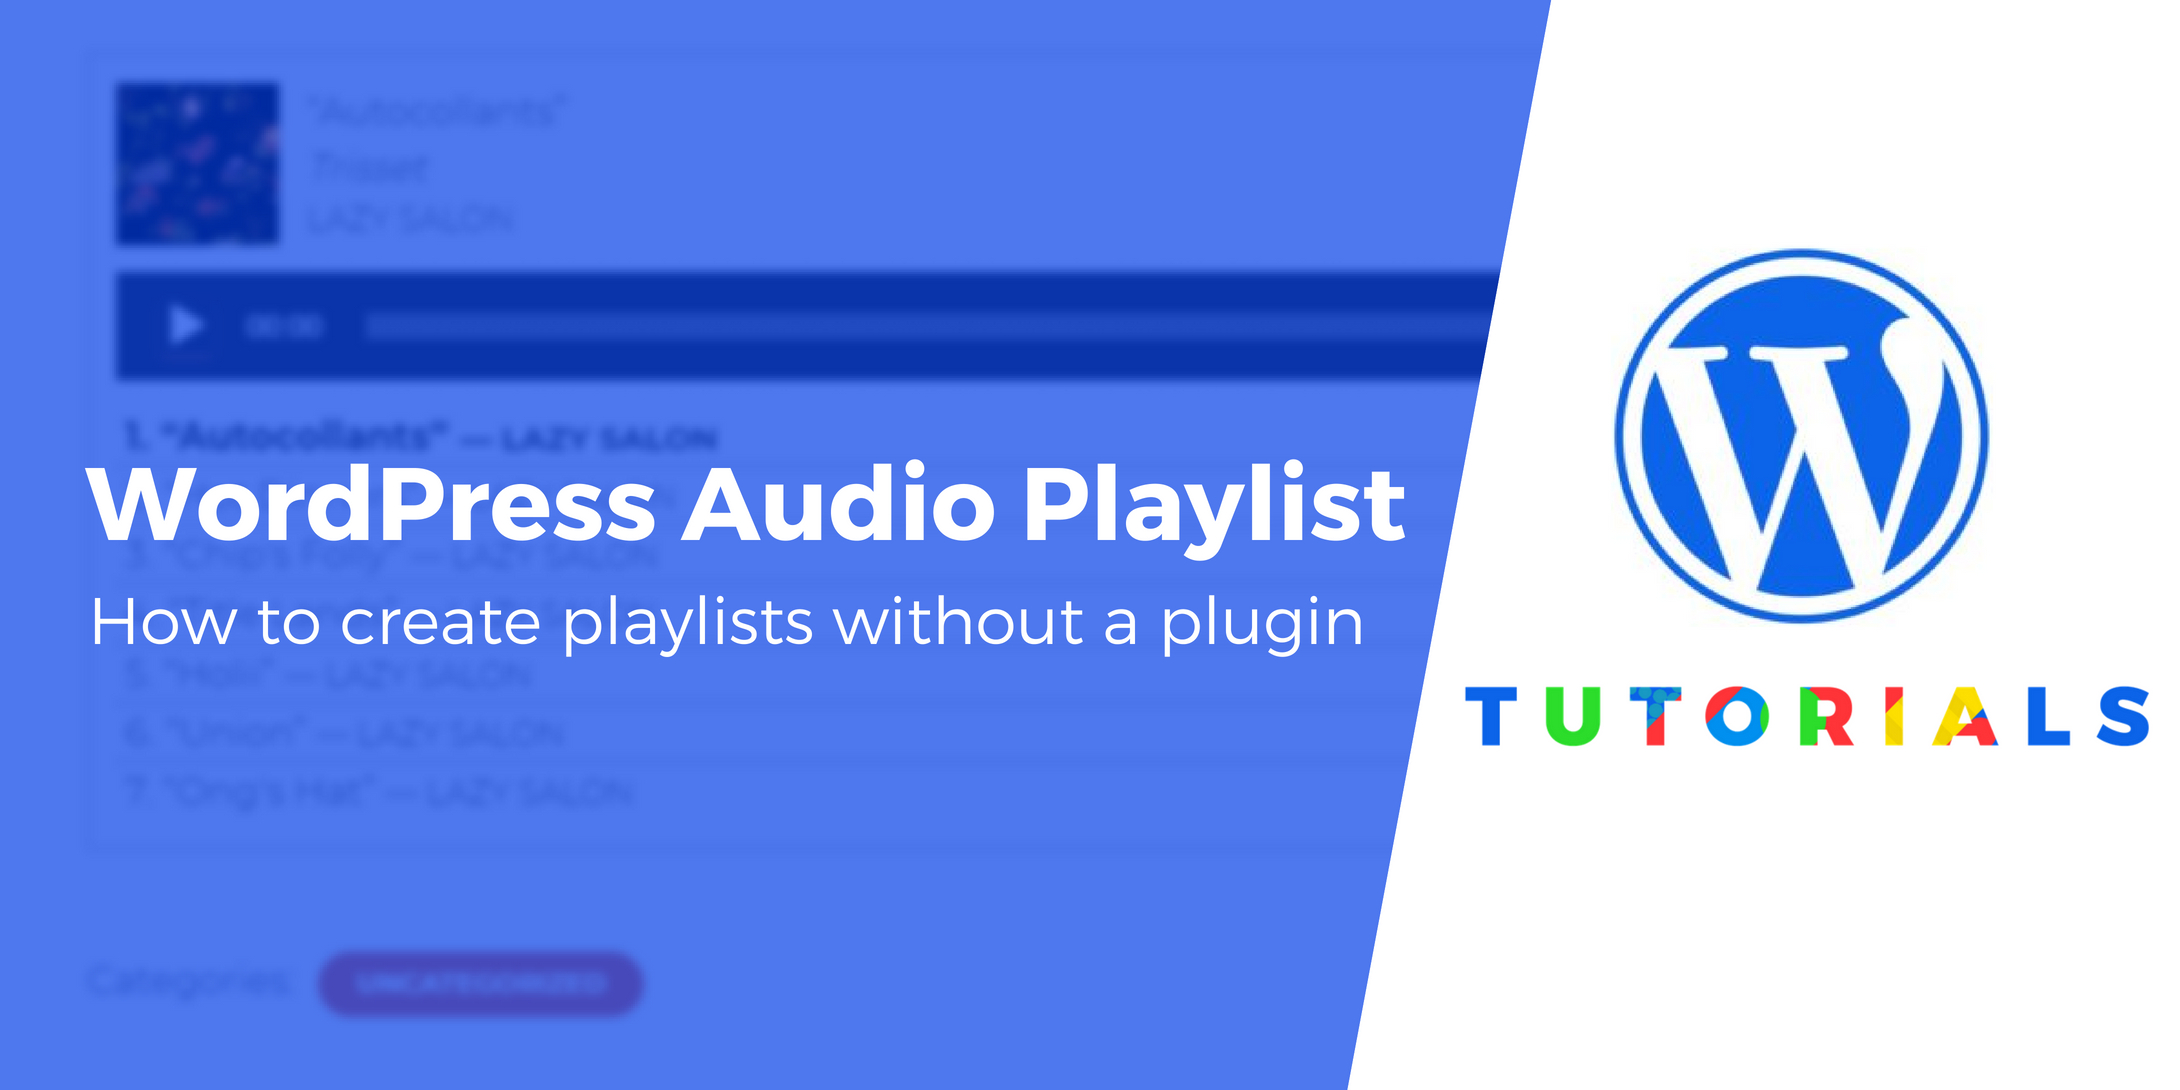 WordPress Audio Playlist